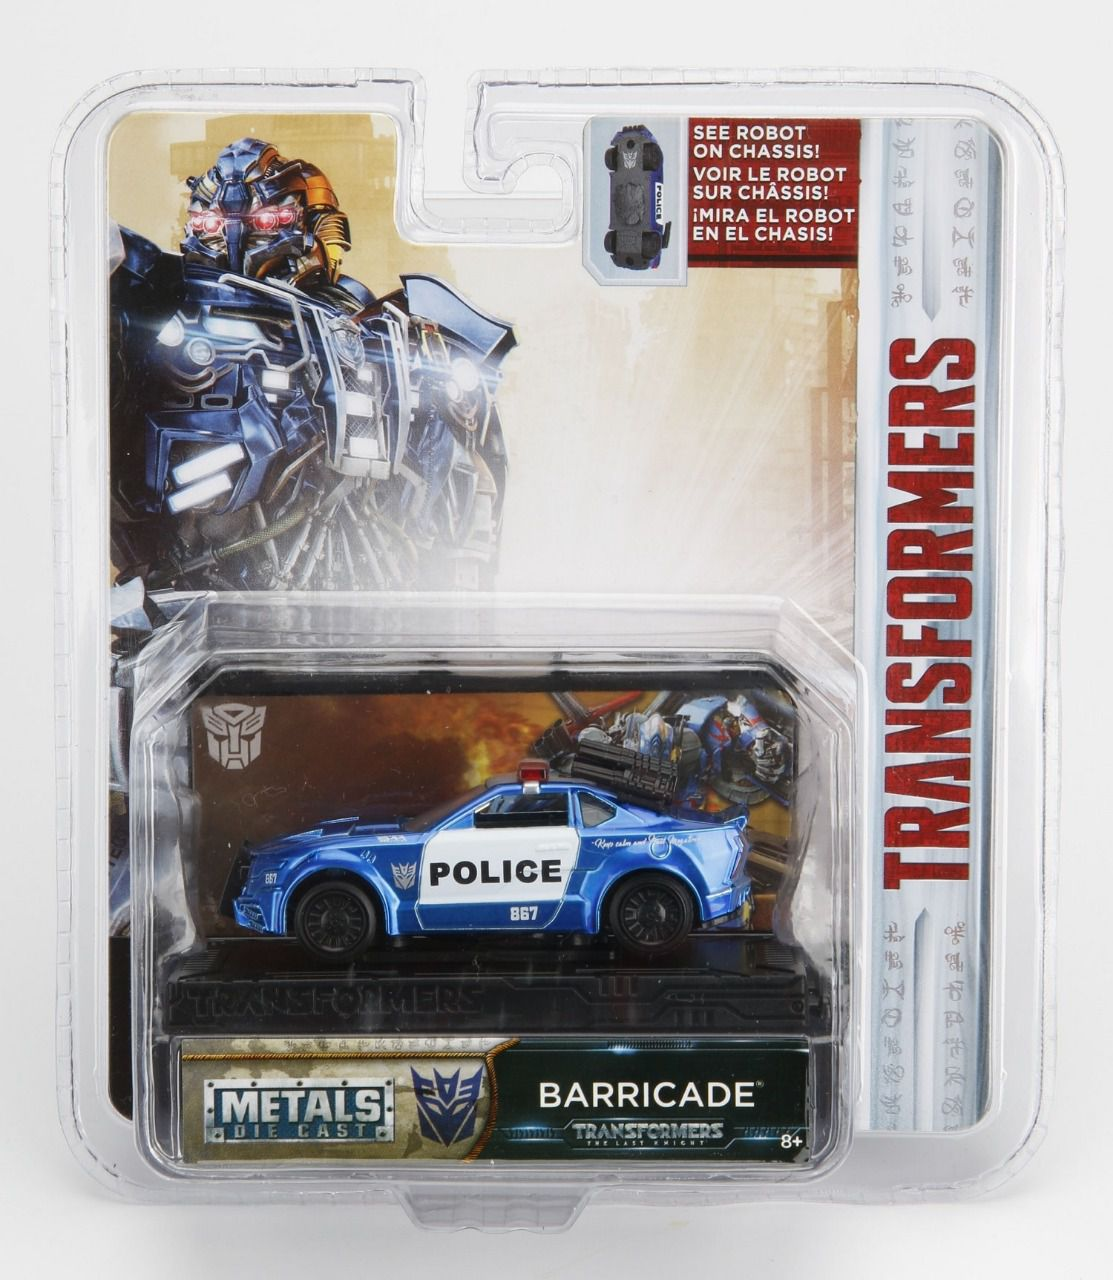 Miniatura Barricade: Transformers (Collector´s Series) Escala 1/64 - Jada